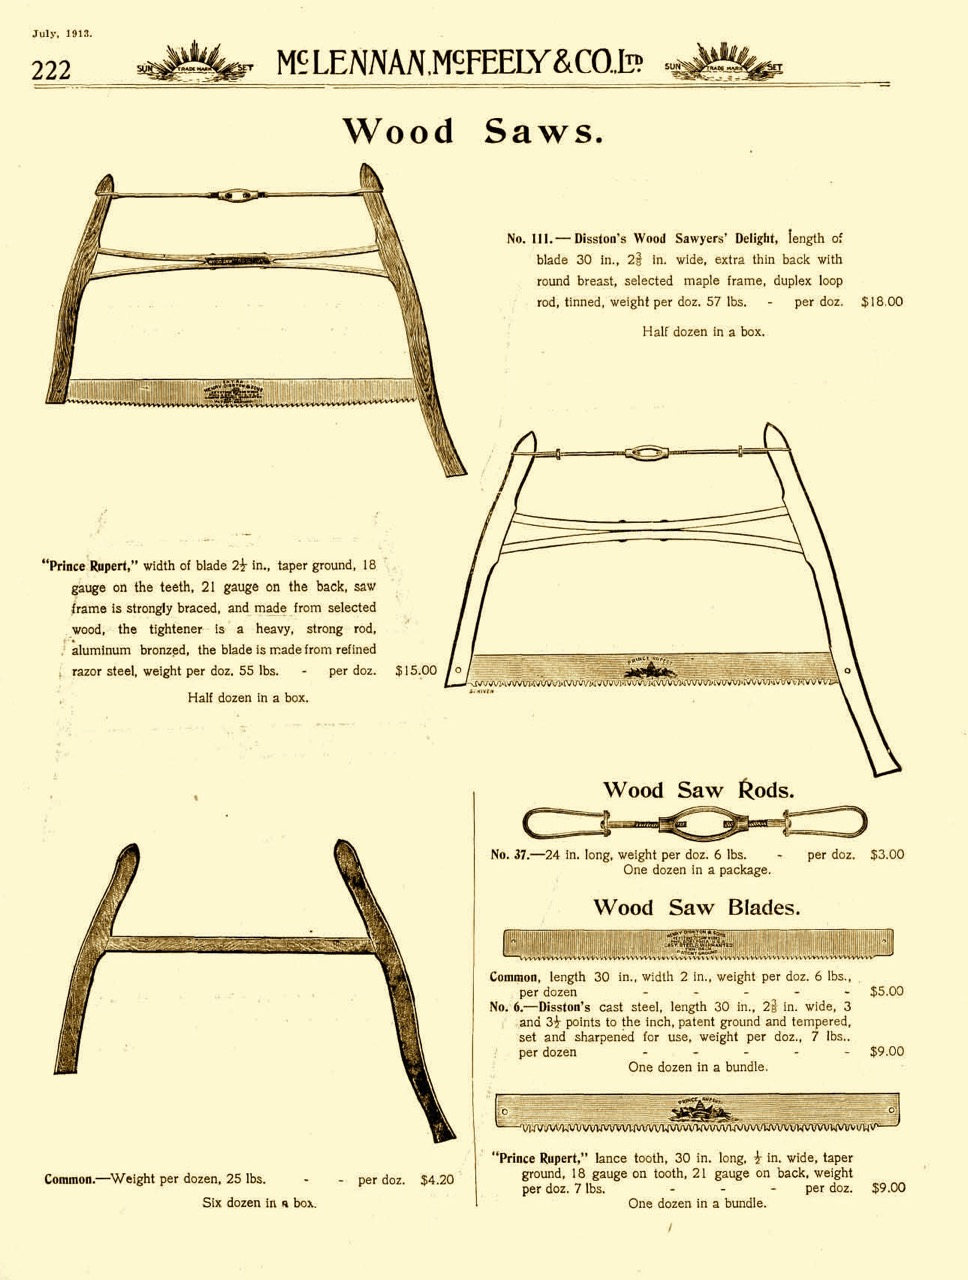 The frame saw.  Virtually every house in North America contained one of these prior to oil and gas heat.